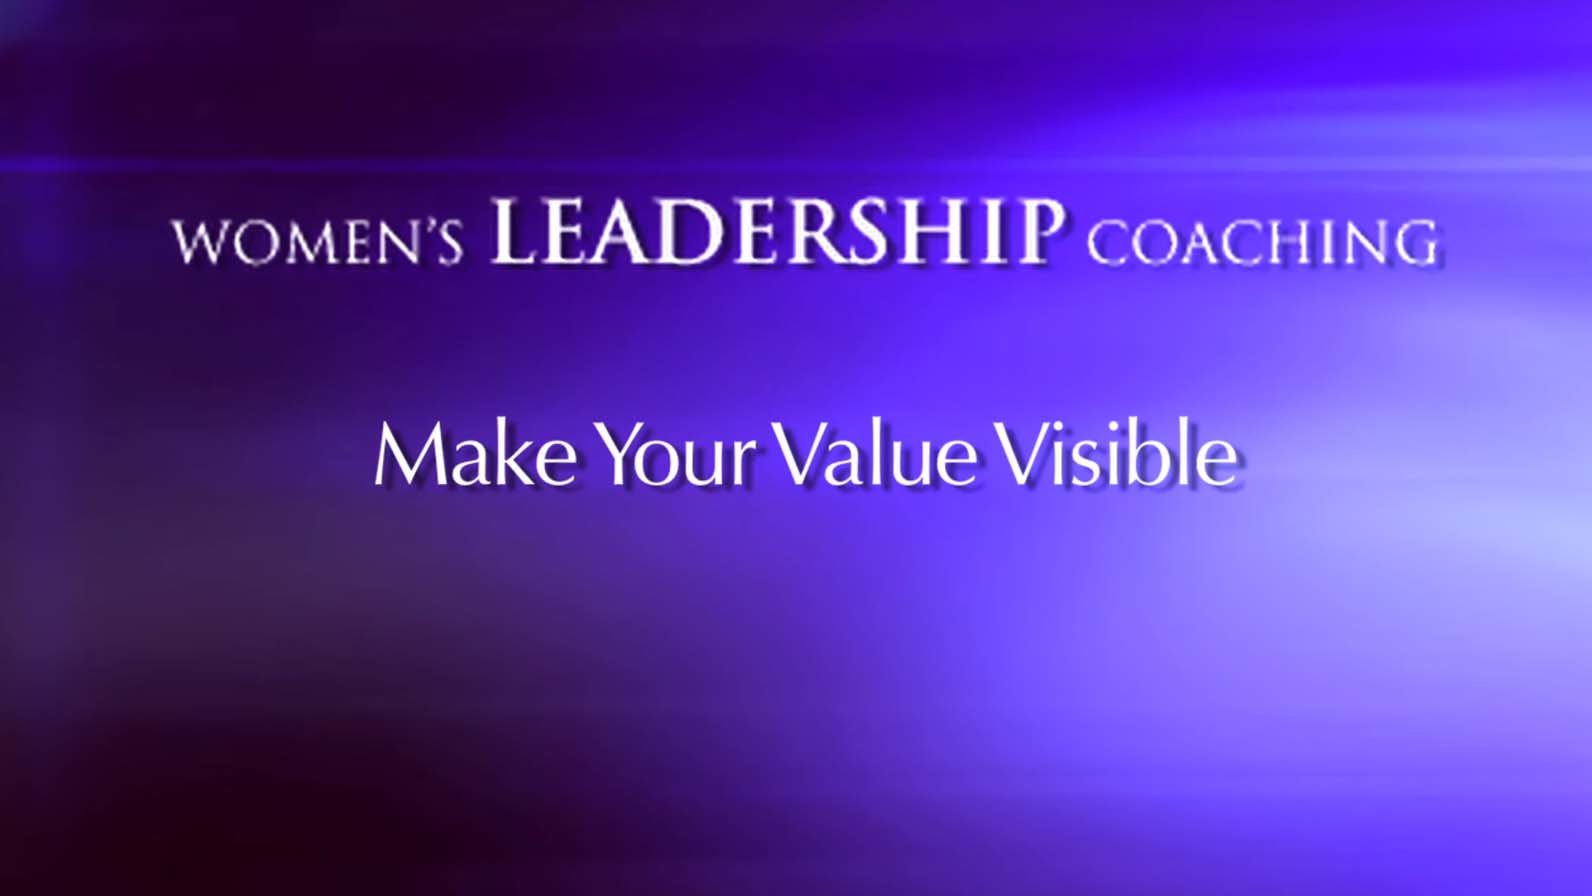 Making Your Value Visible